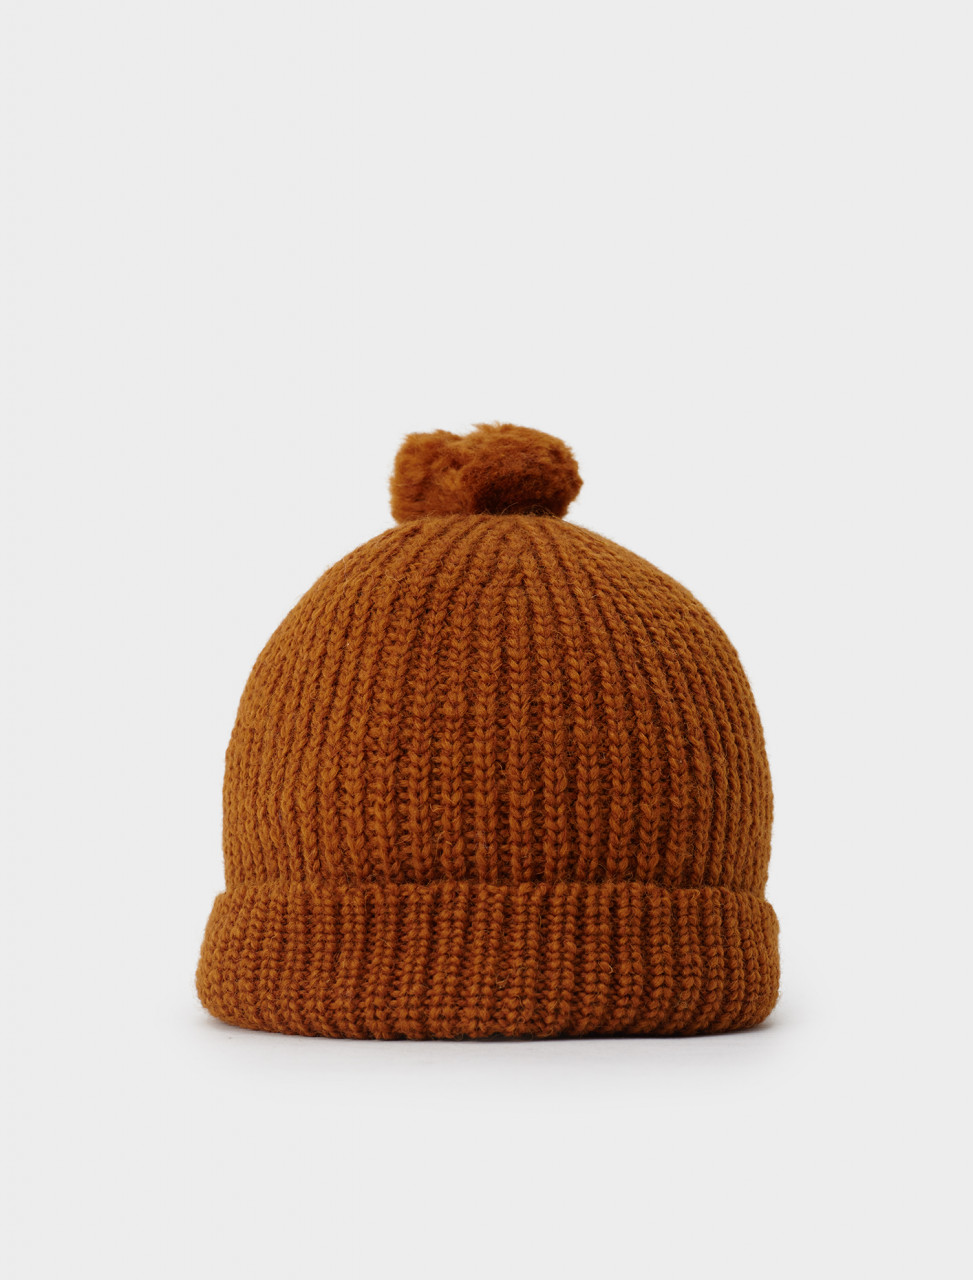 260-202-22206-1703-701 DRIES VAN NOTEN MAS HAT RUST